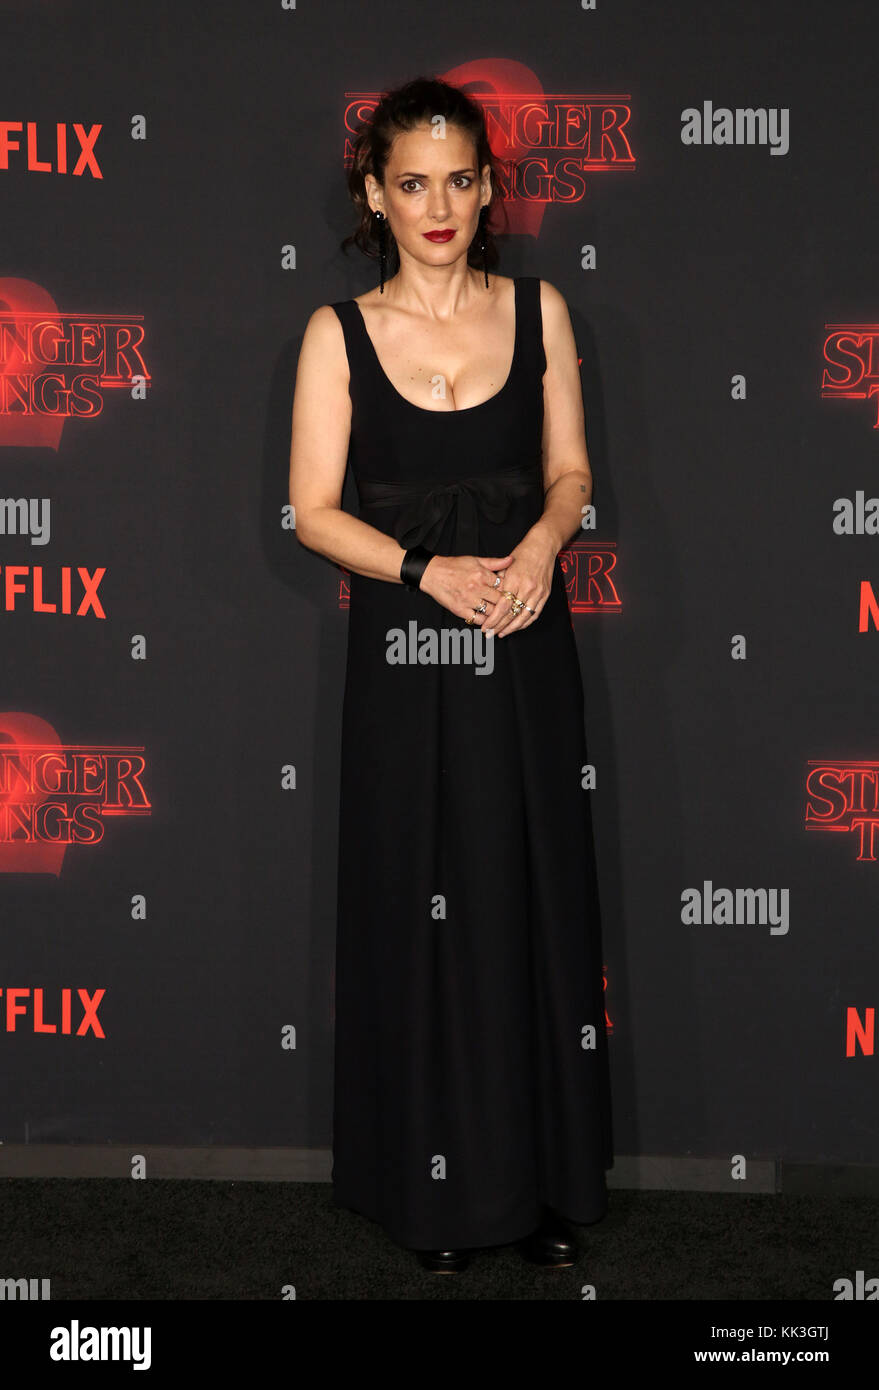 Celebrities attend Netflix's Stranger Things 2 Premiere at Westwood Village Theater.  Featuring: Winona Ryder - Stock Image